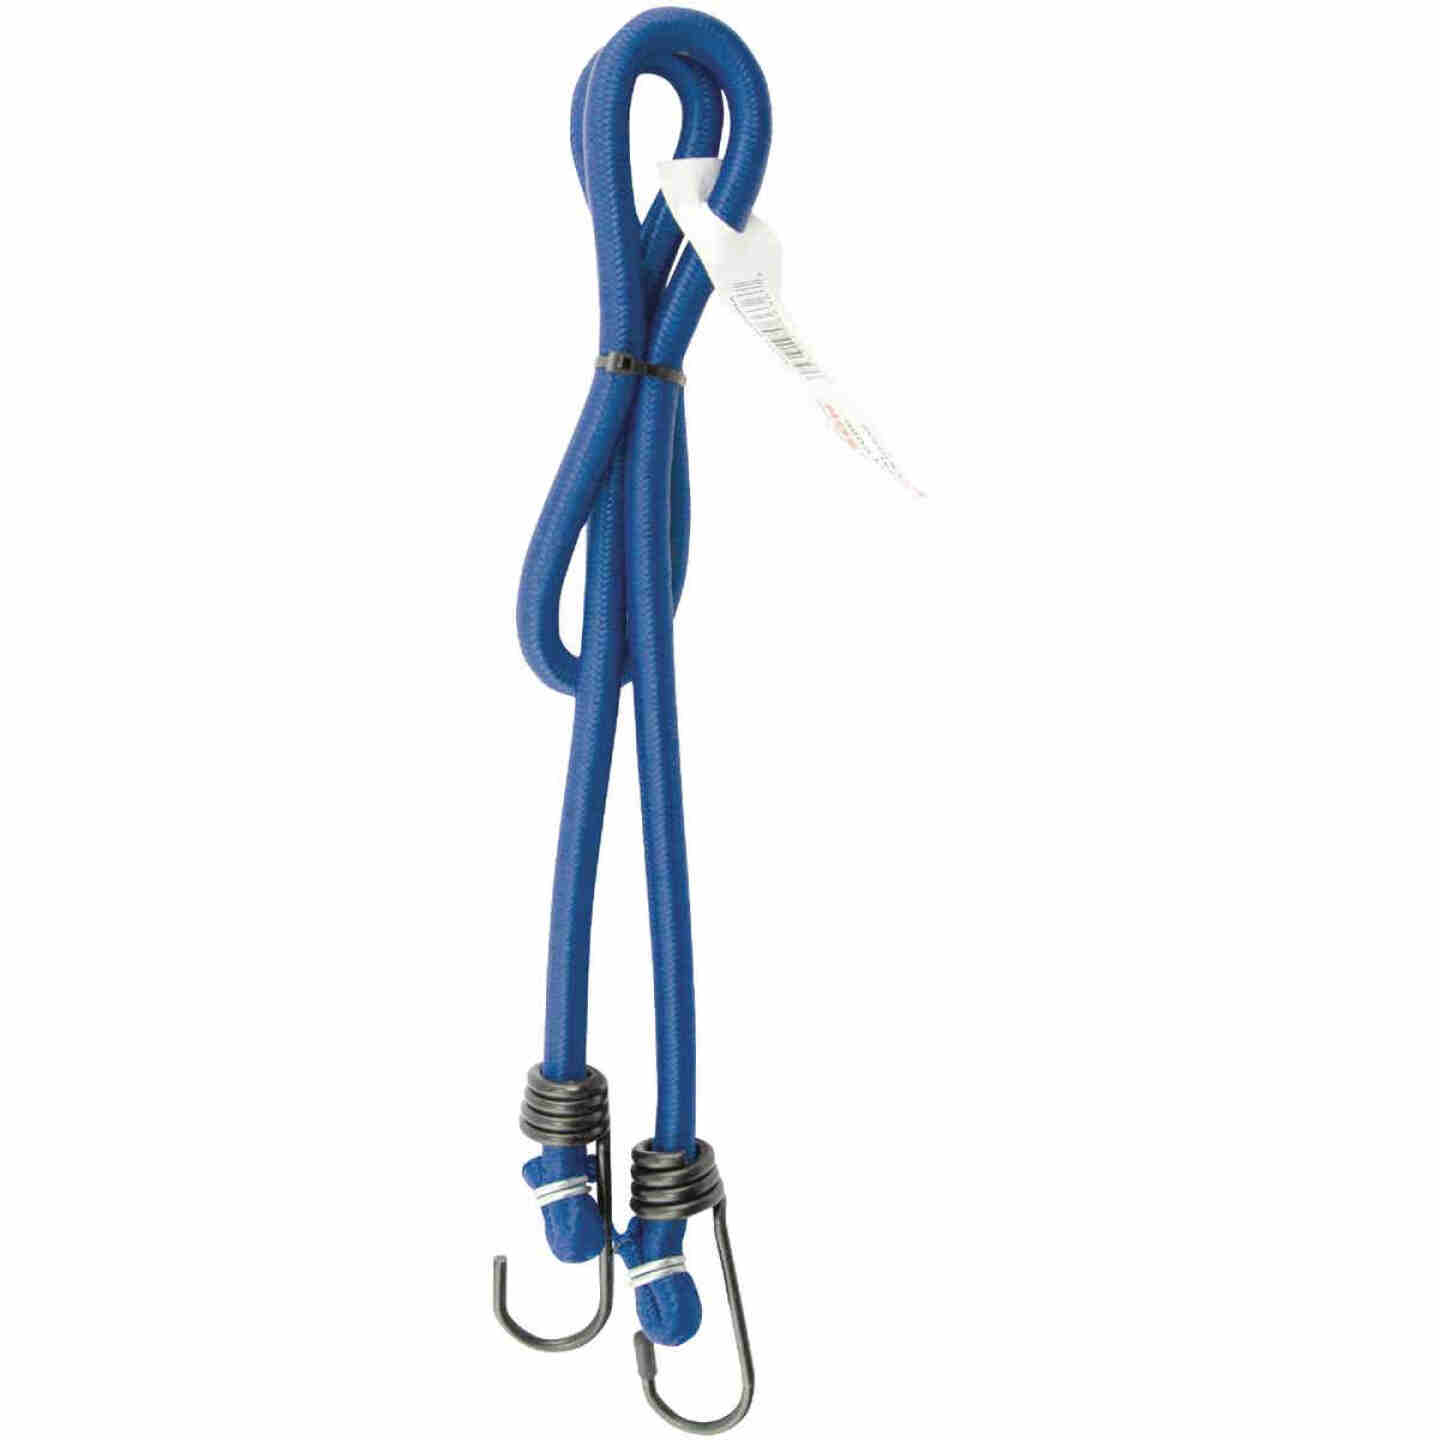 Erickson 1/4 In. x 36 In. Bungee Cord, Assorted Colors Image 2